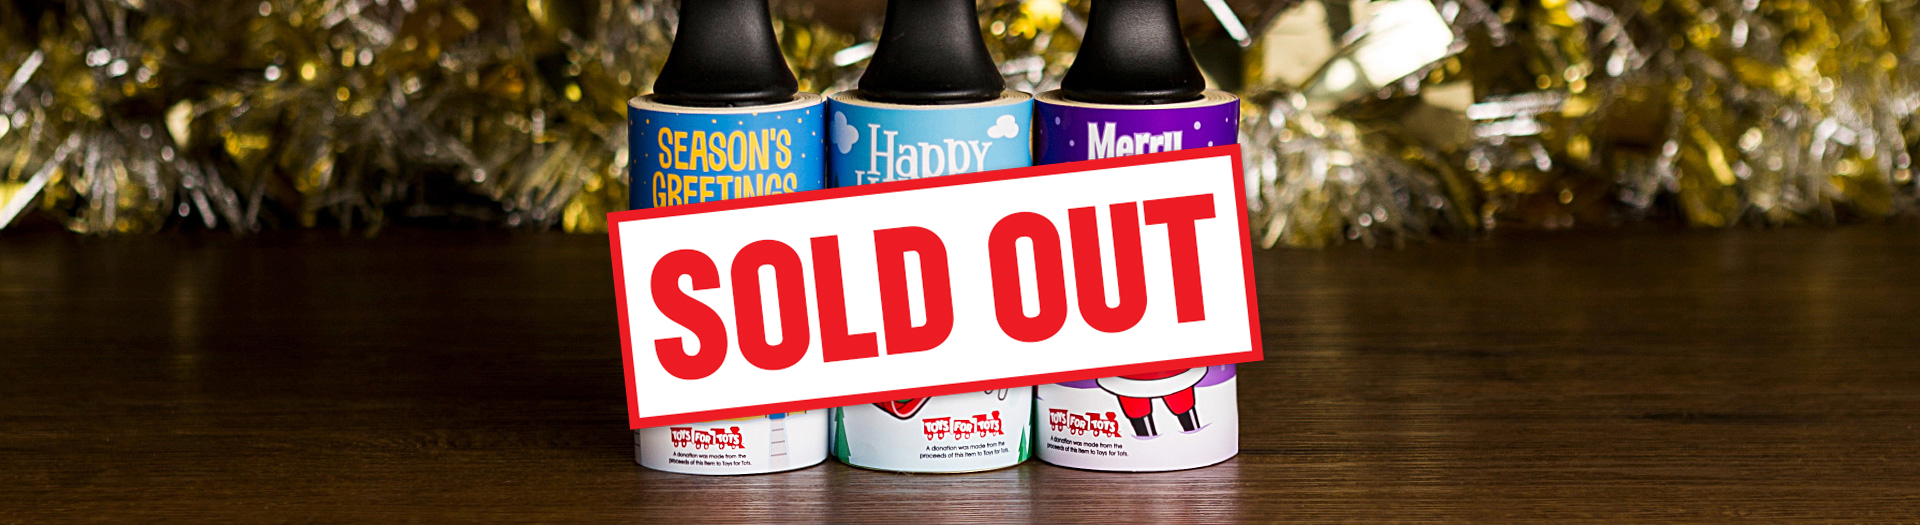 2019 Cleaner's Supply Holiday Lint Removers Sold Out